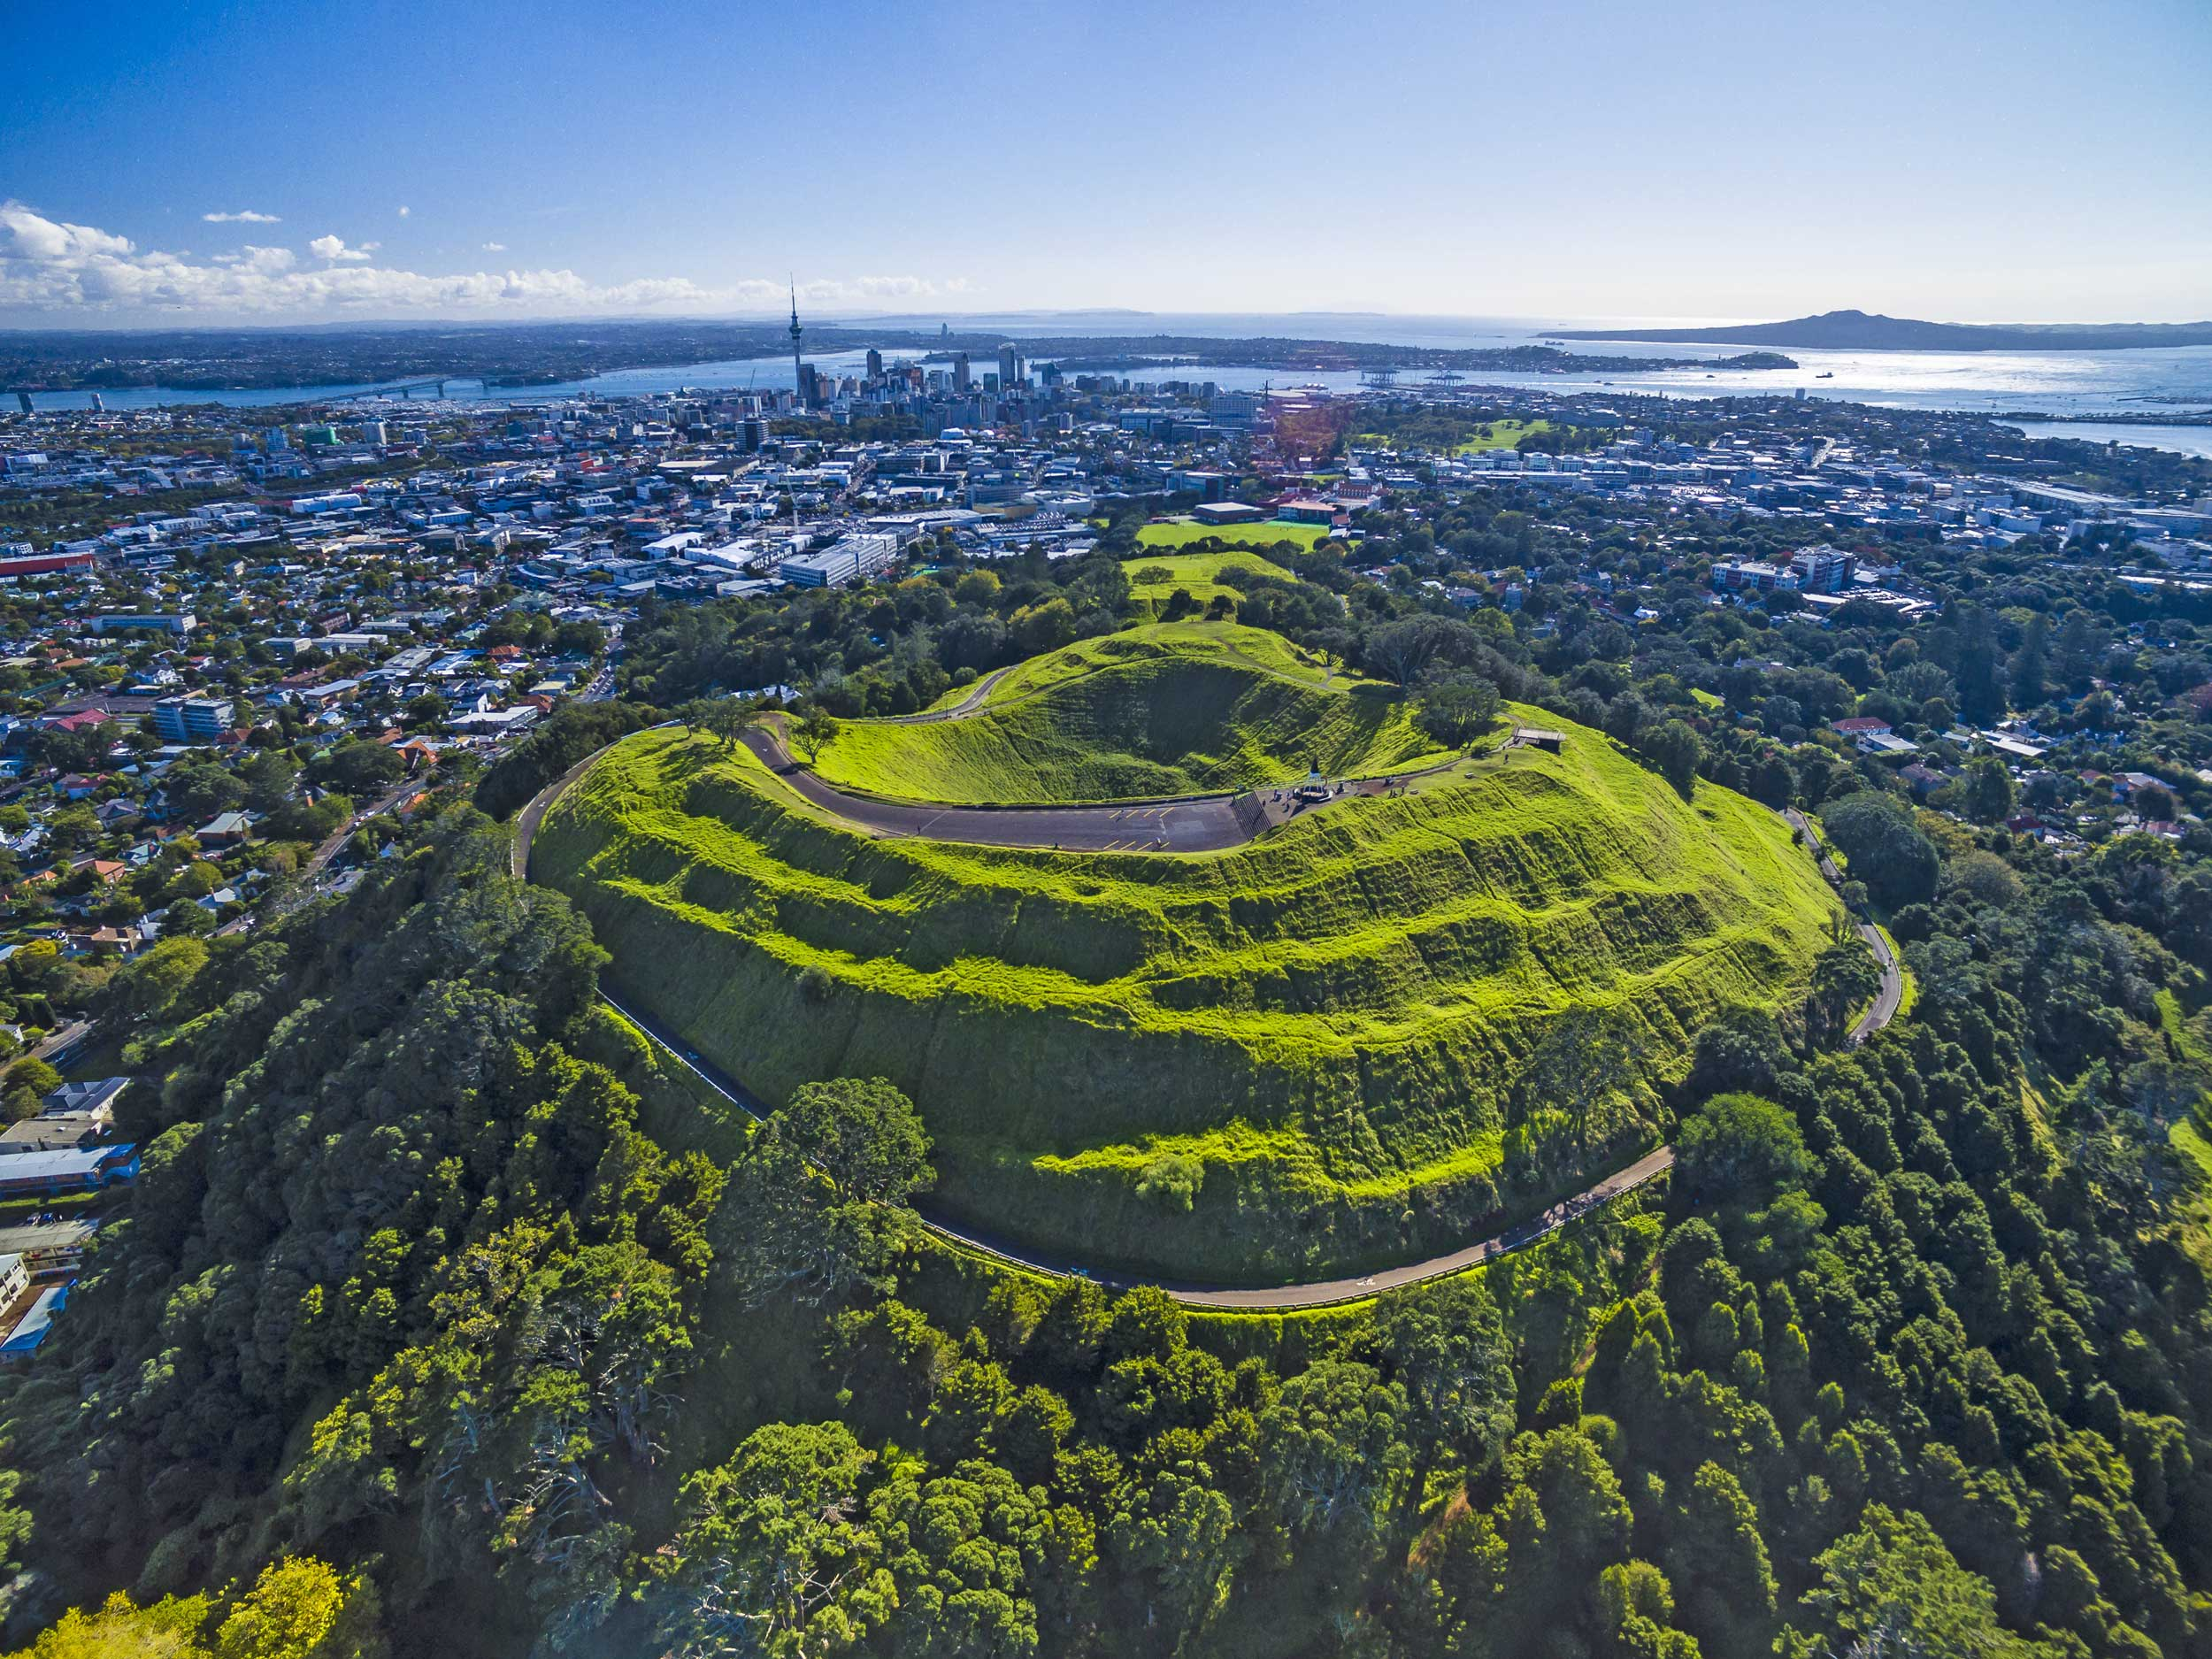 Aerial view of a grassy and forested volcano with Auckland city in the distance